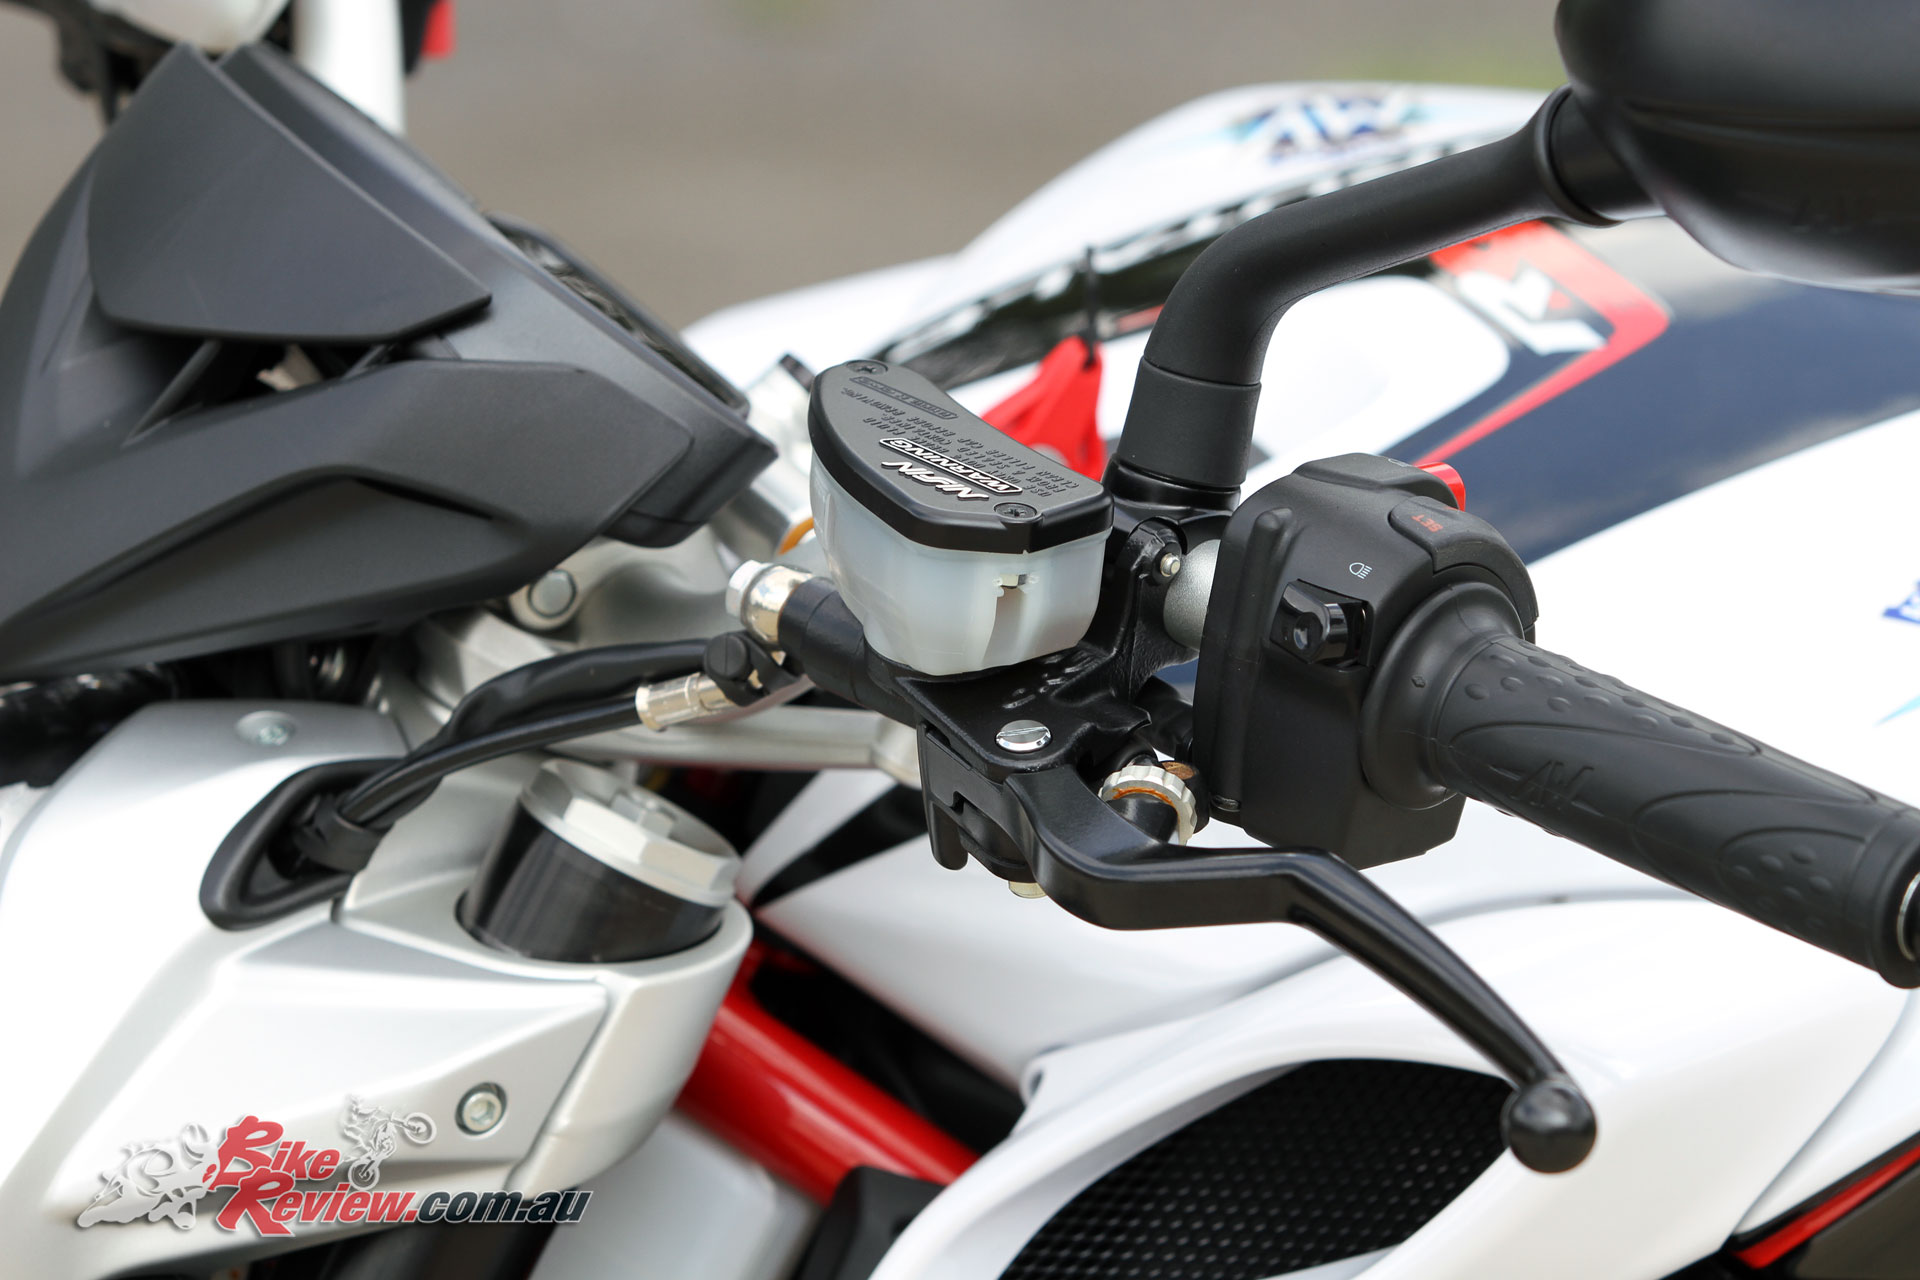 The hydraulic clutch is not too heavy, and the up-down quickshifter makes it often unnecessary